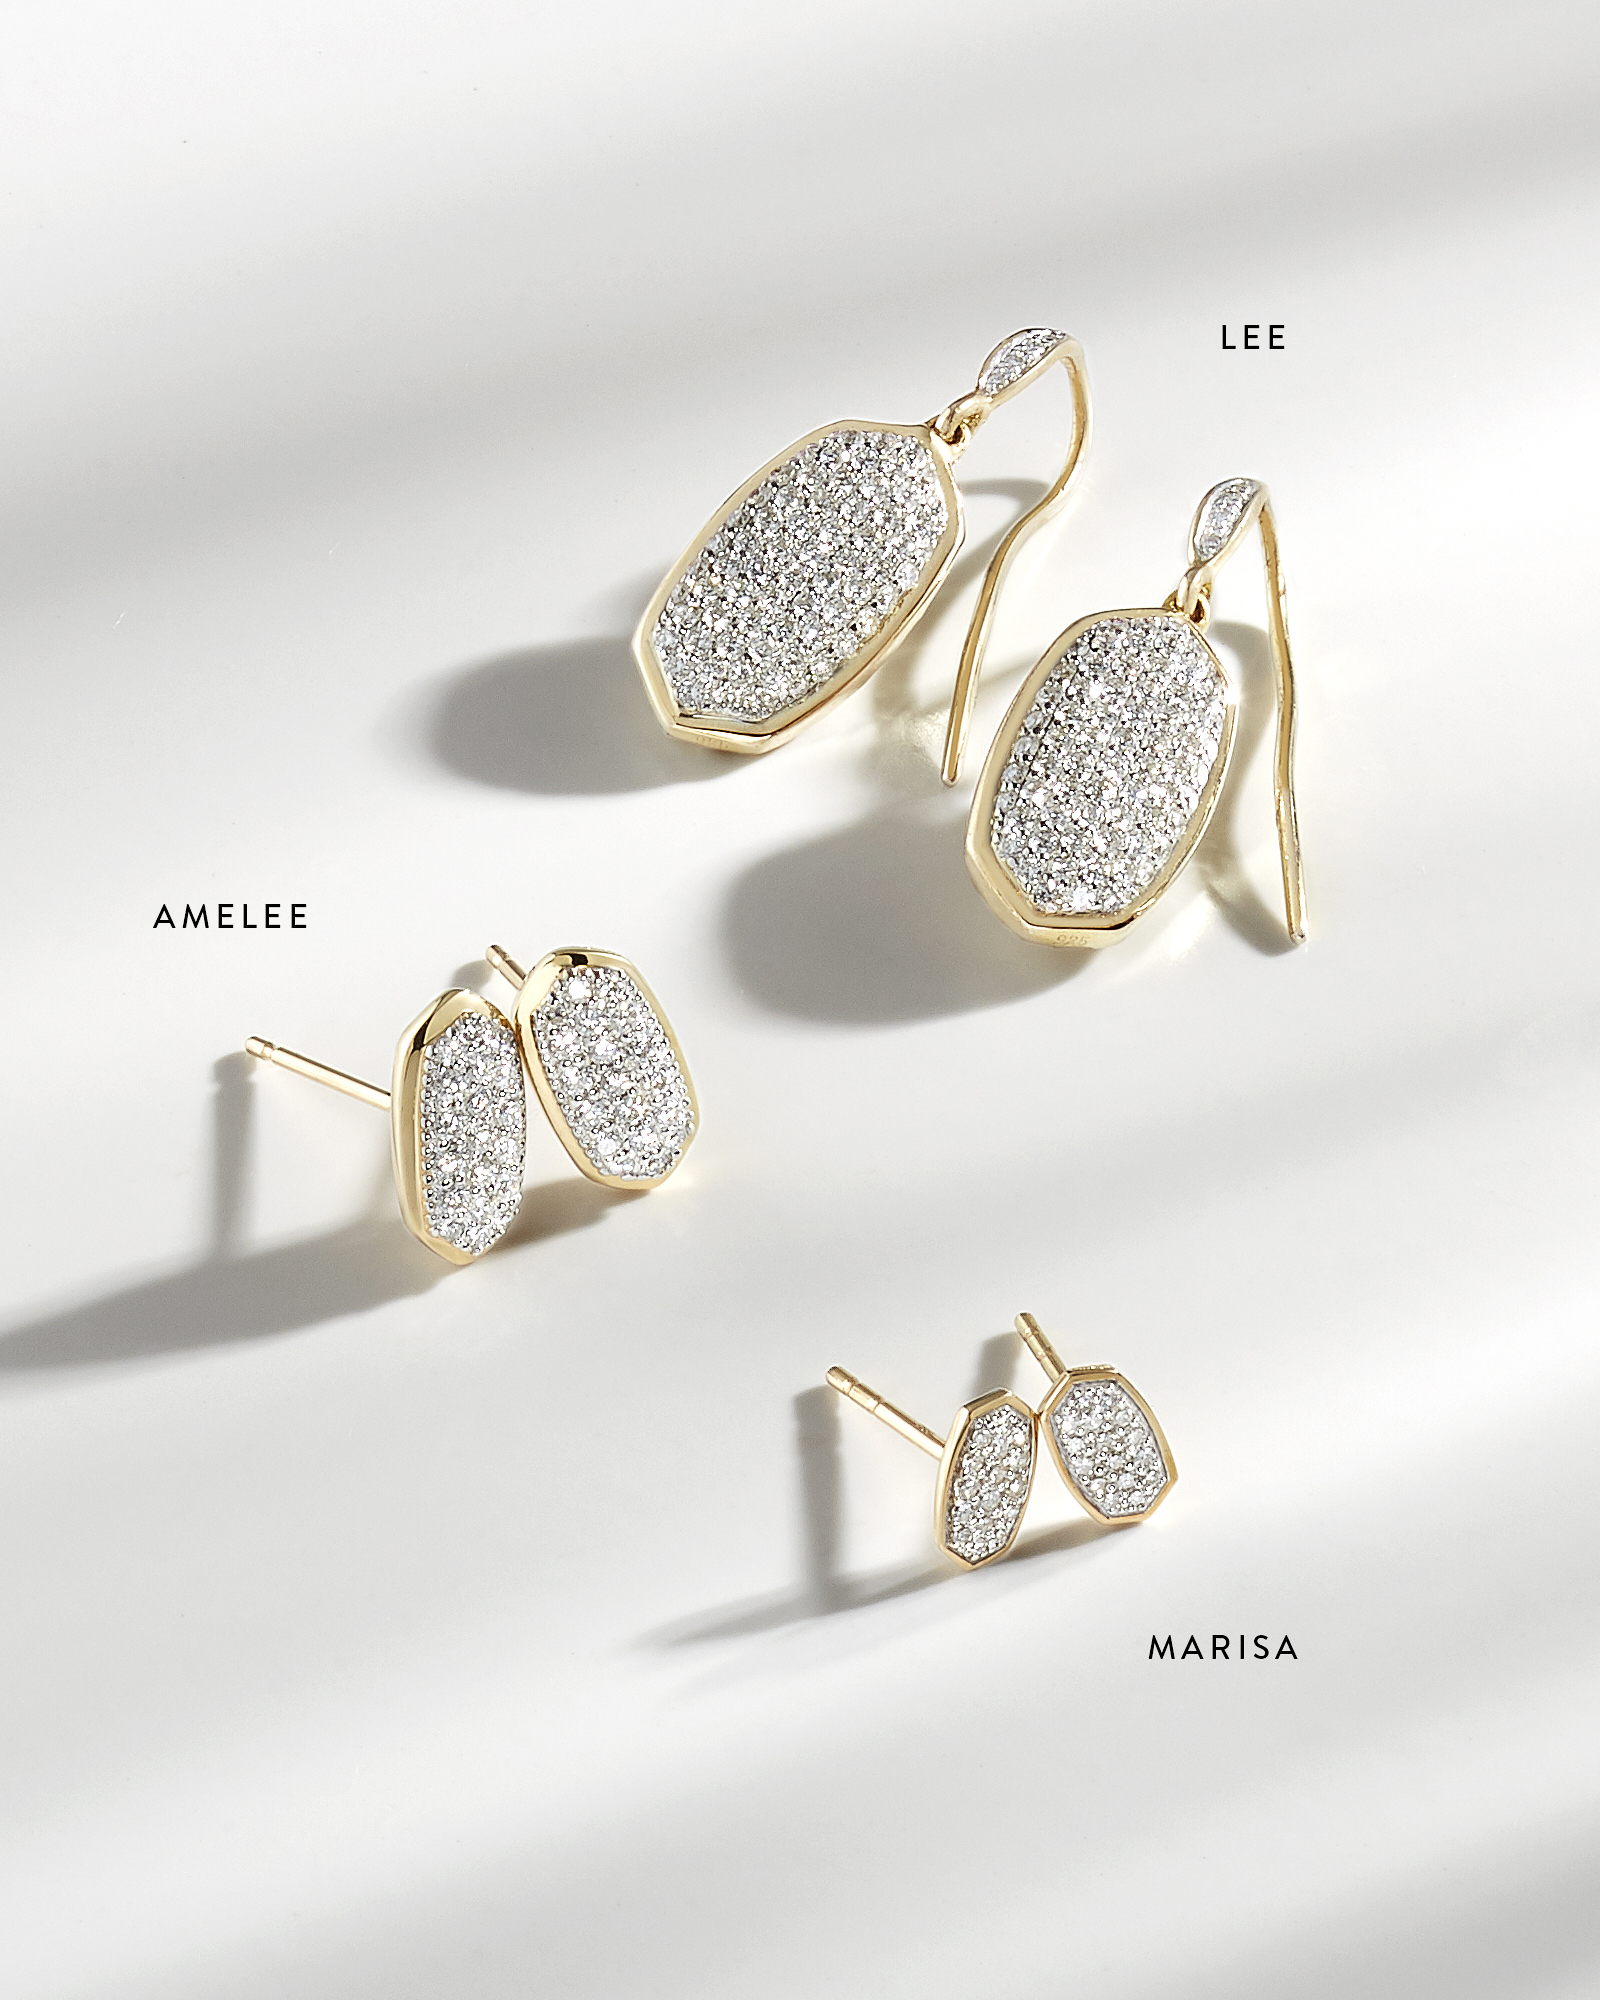 Amelee Pave Diamond Stud Earrings